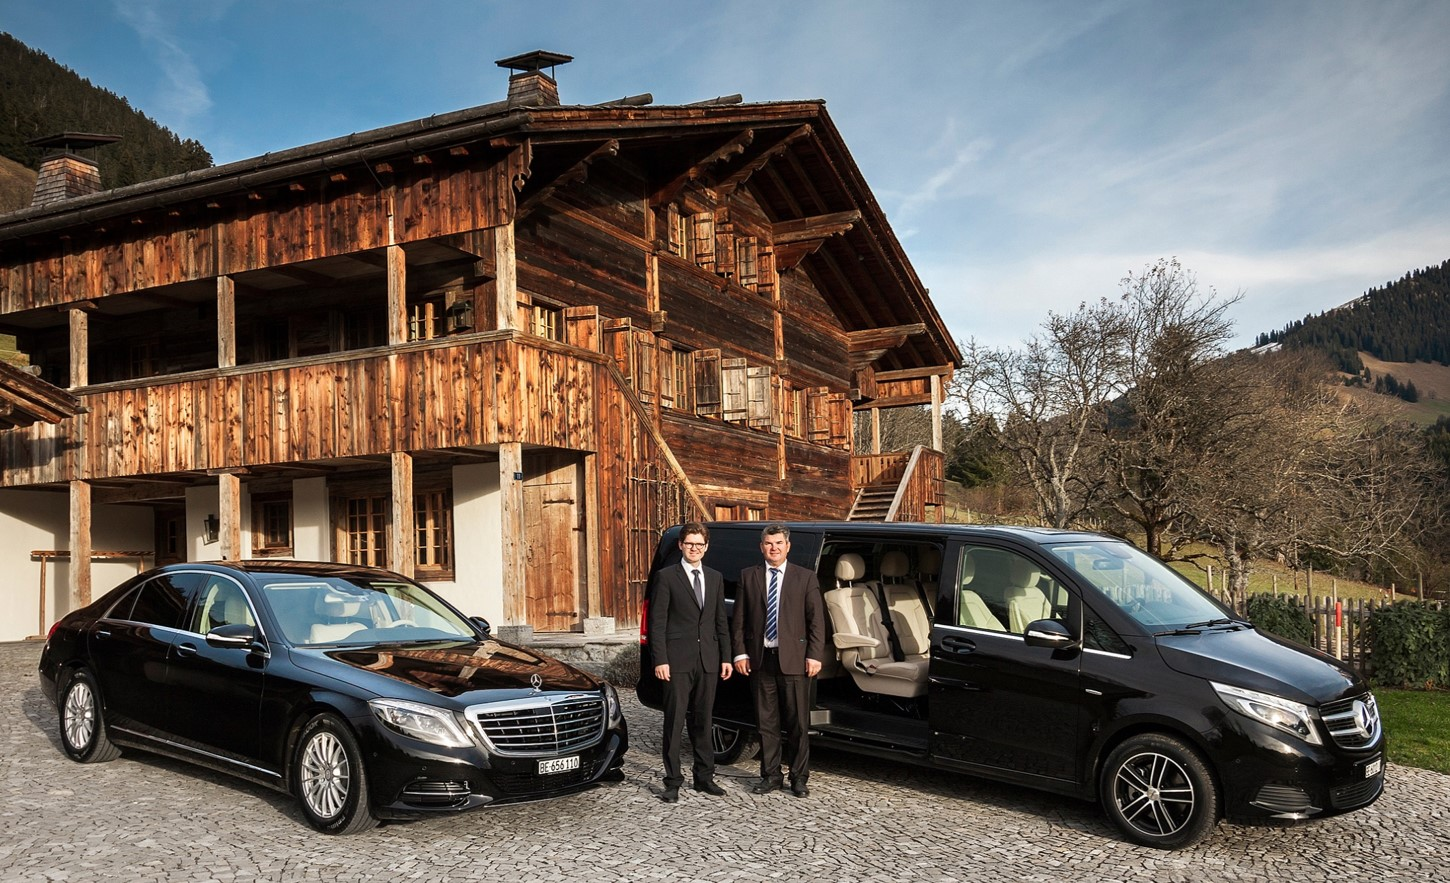 Owners of Gstaad Limousine Service by Taxi Simon (l.t.r.: Mario and Zoran Mitic)